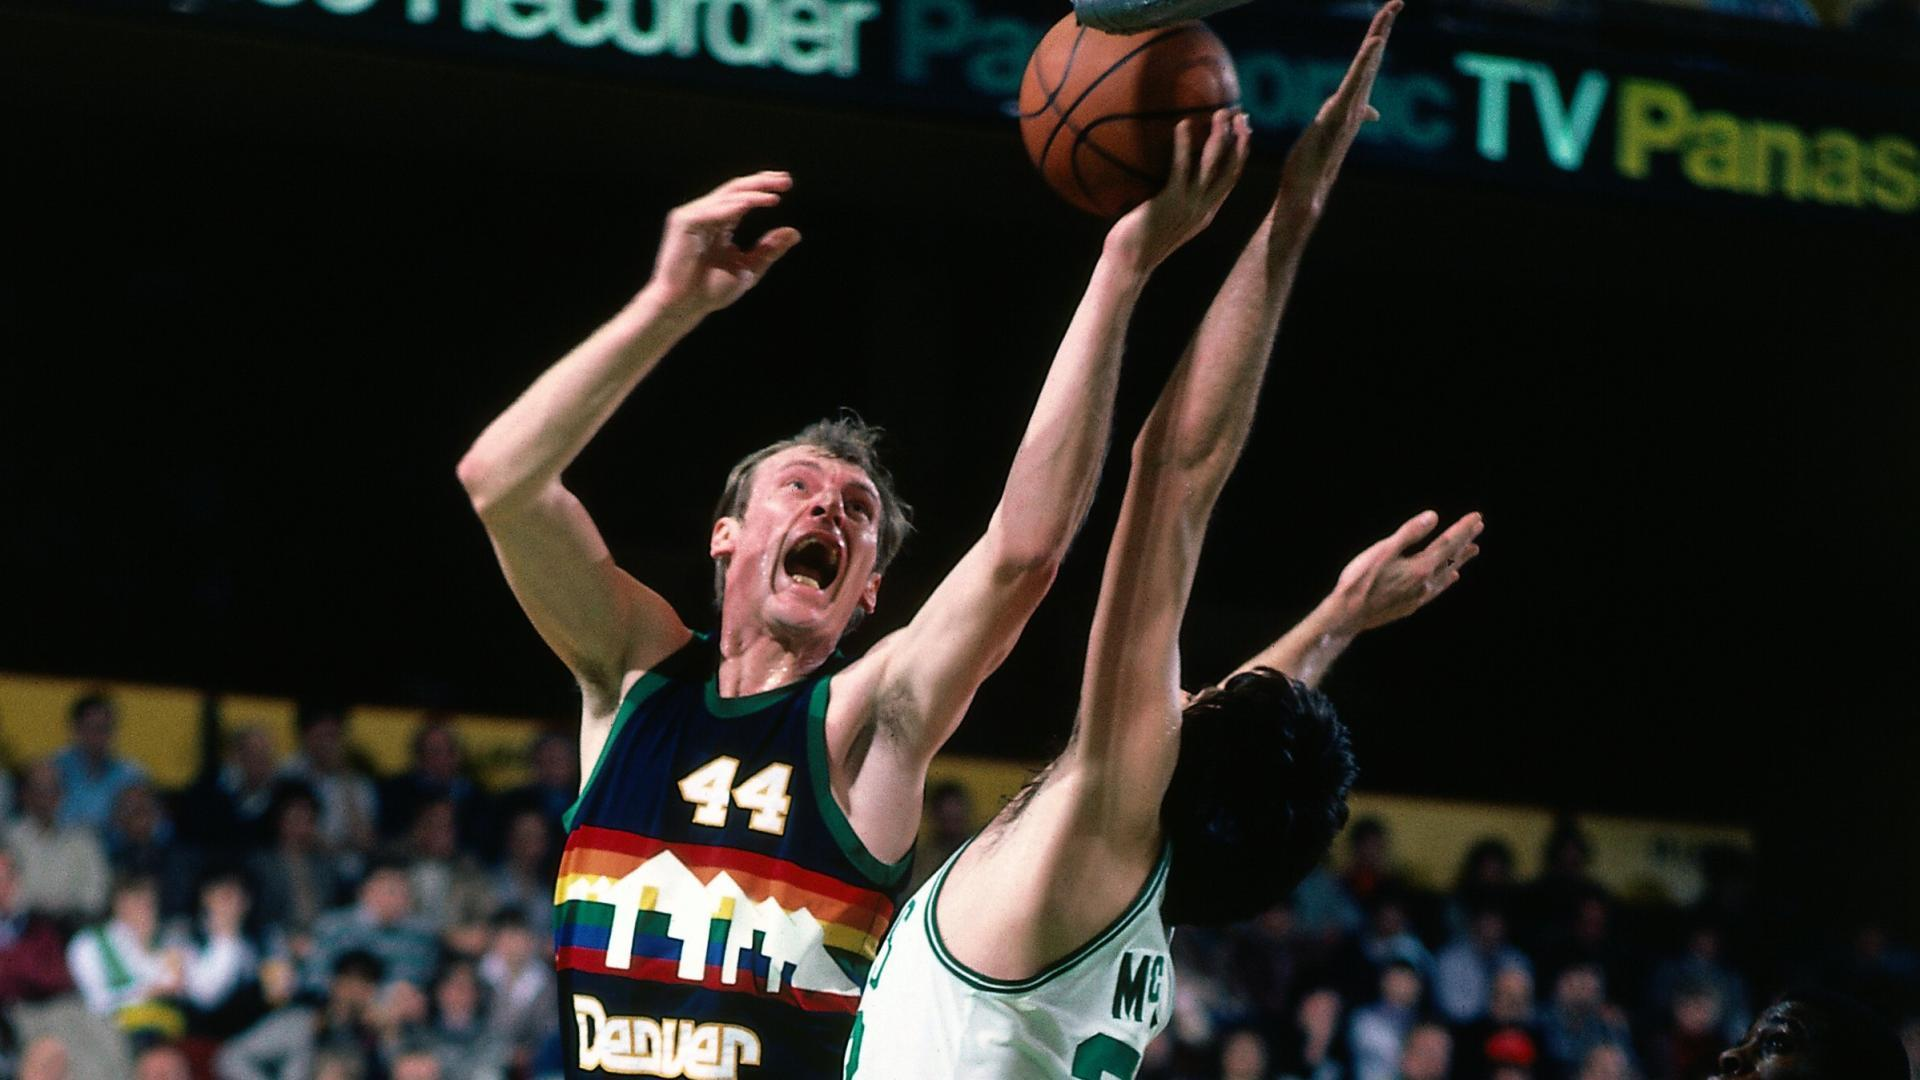 Legends profile Dan Issel